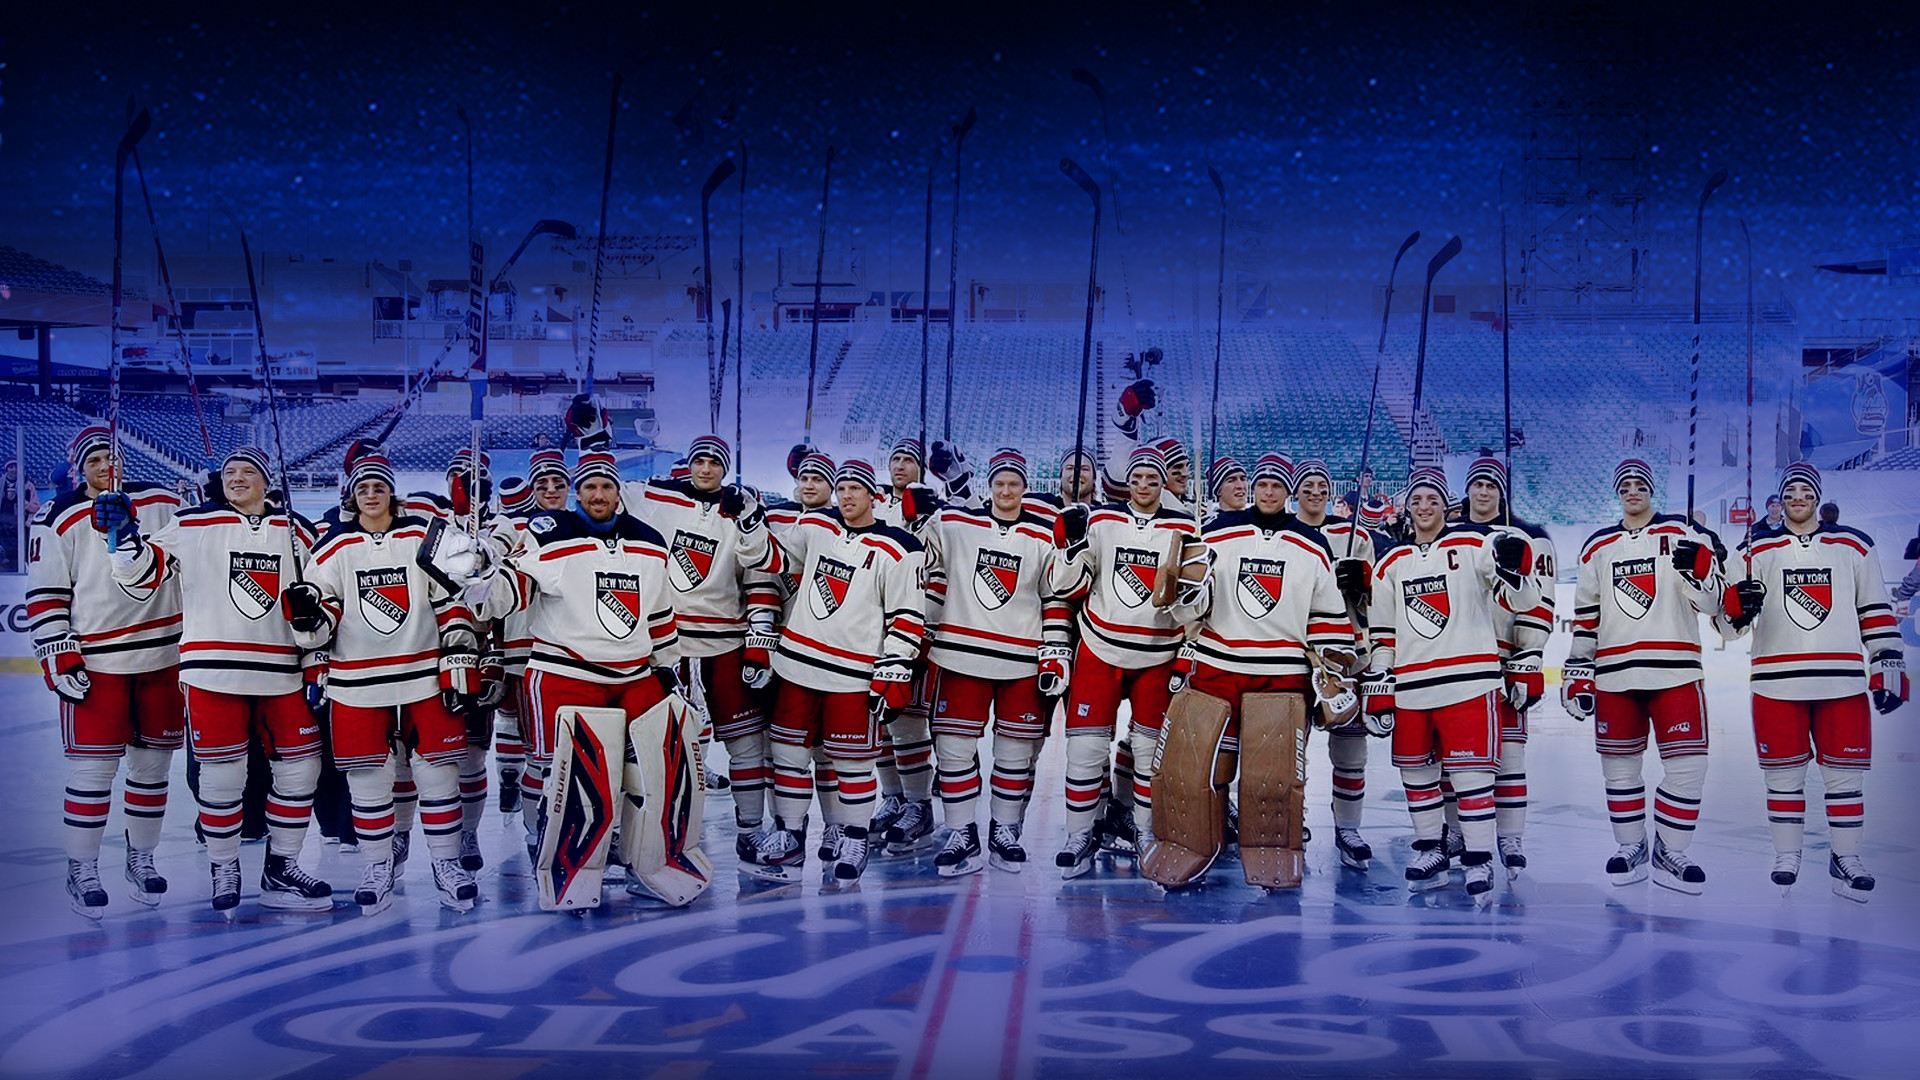 hockey backgrounds for iphone